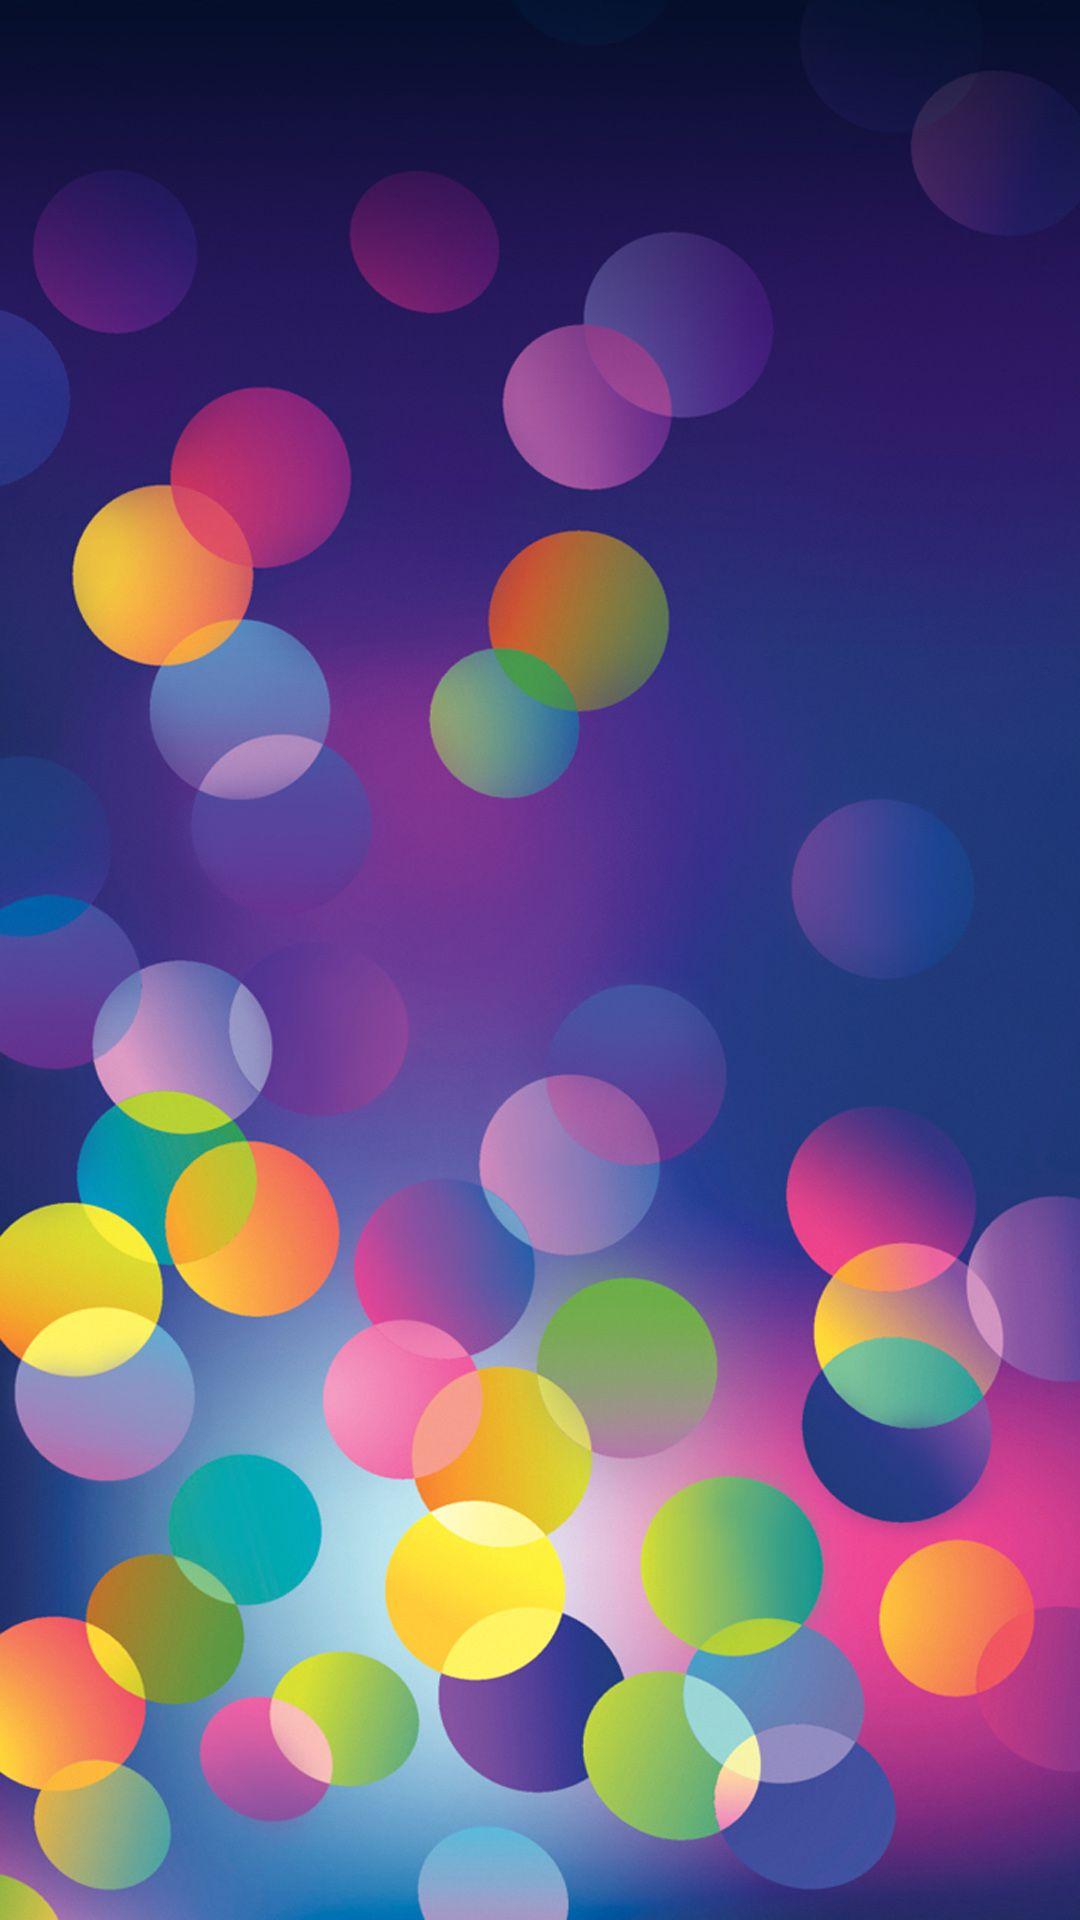 Beautiful Digital Background Picture Iphone Wallpaper Gradient Iphone Wallpaper Colorful Wallpaper